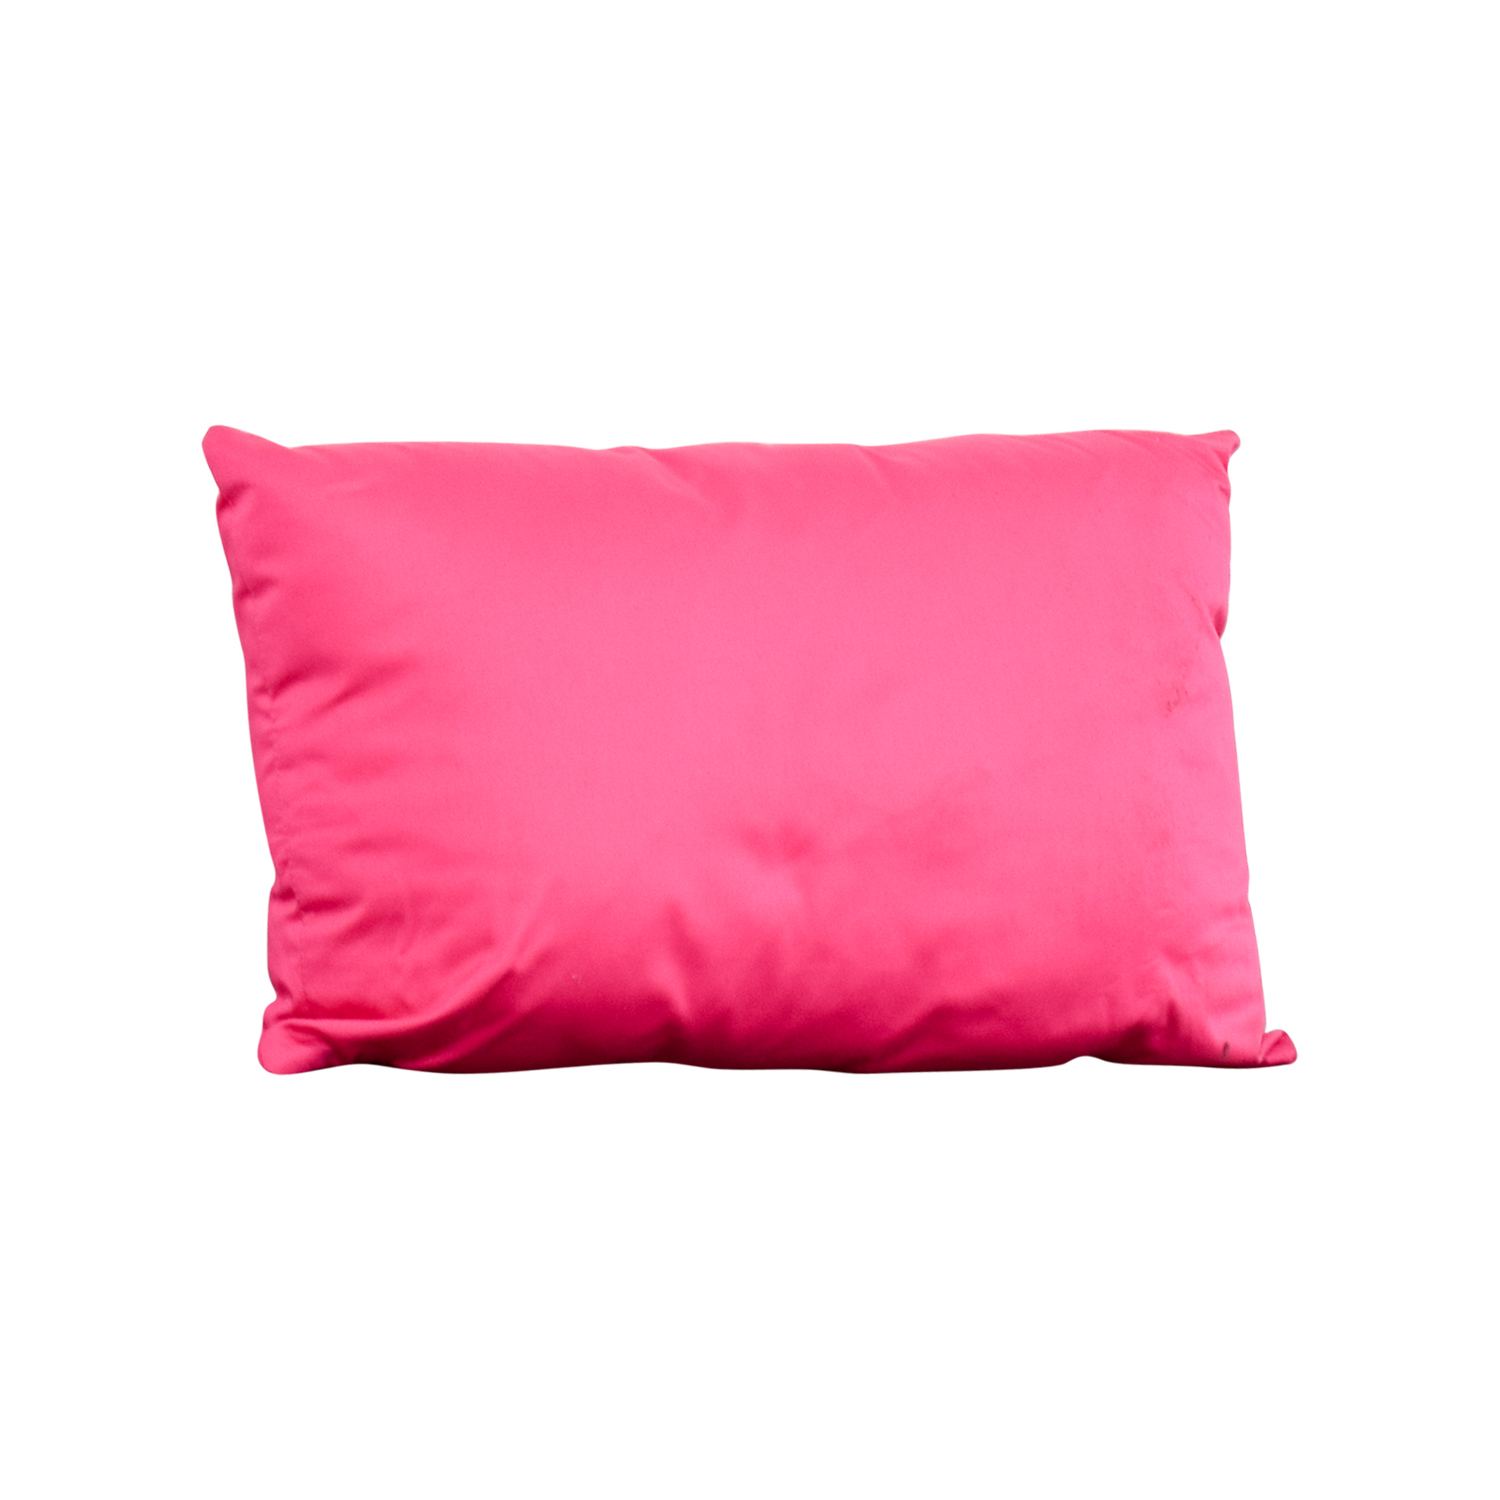 Society Social Society Social Hot Pink Pillow for sale